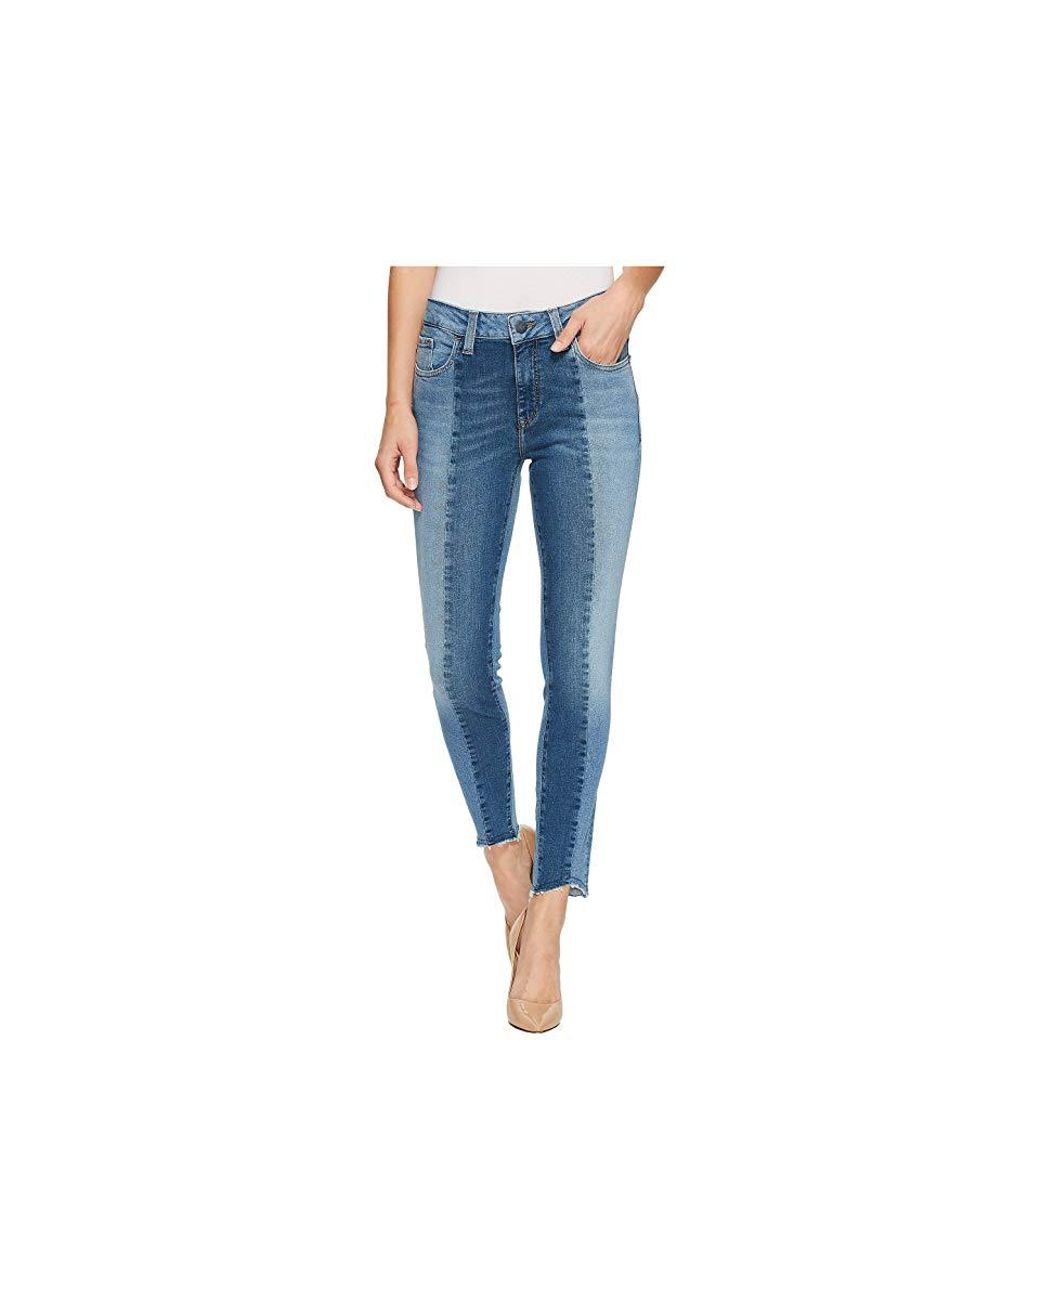 67f47470c Mavi Jeans Tess High-rise Super Skinny Ankle In Mid Shaded Blocking Gold  Icon (mid Shaded Blocking Gold Icon) Jeans in Blue - Save 35% - Lyst